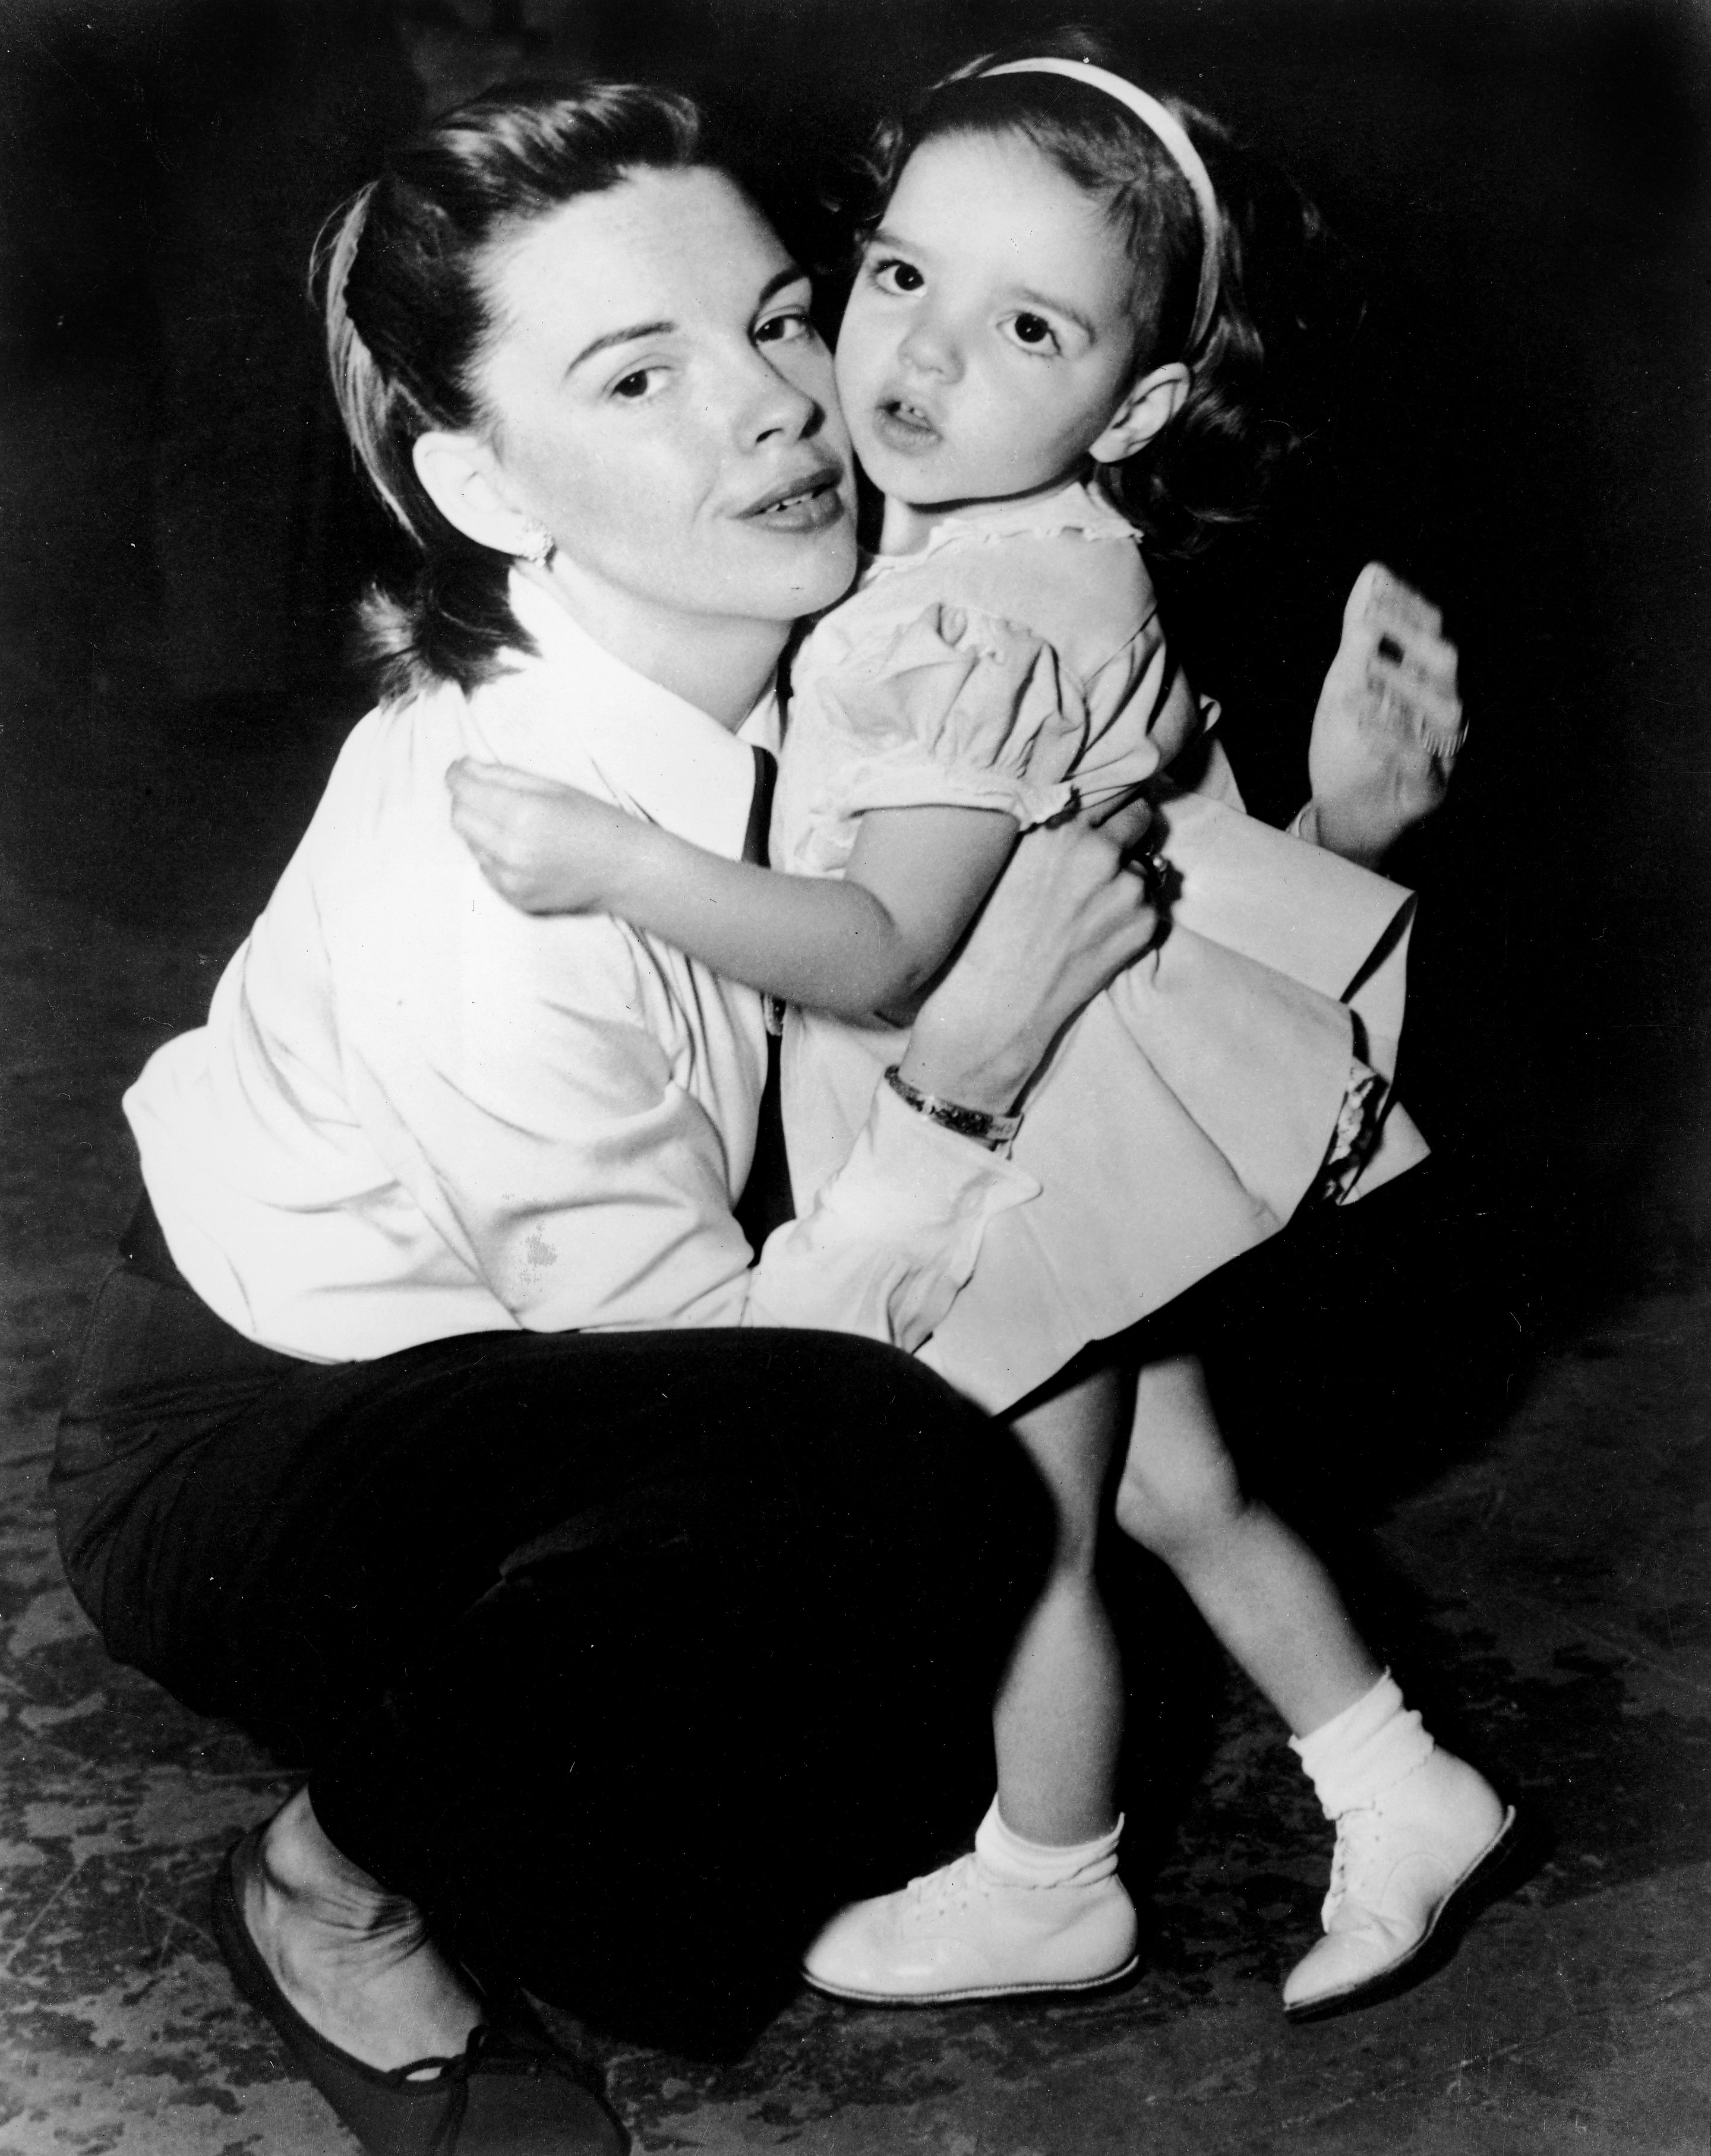 Liza Minnelli Judy Garland Marvelous Similarities Between The Famous Mother And Daughter